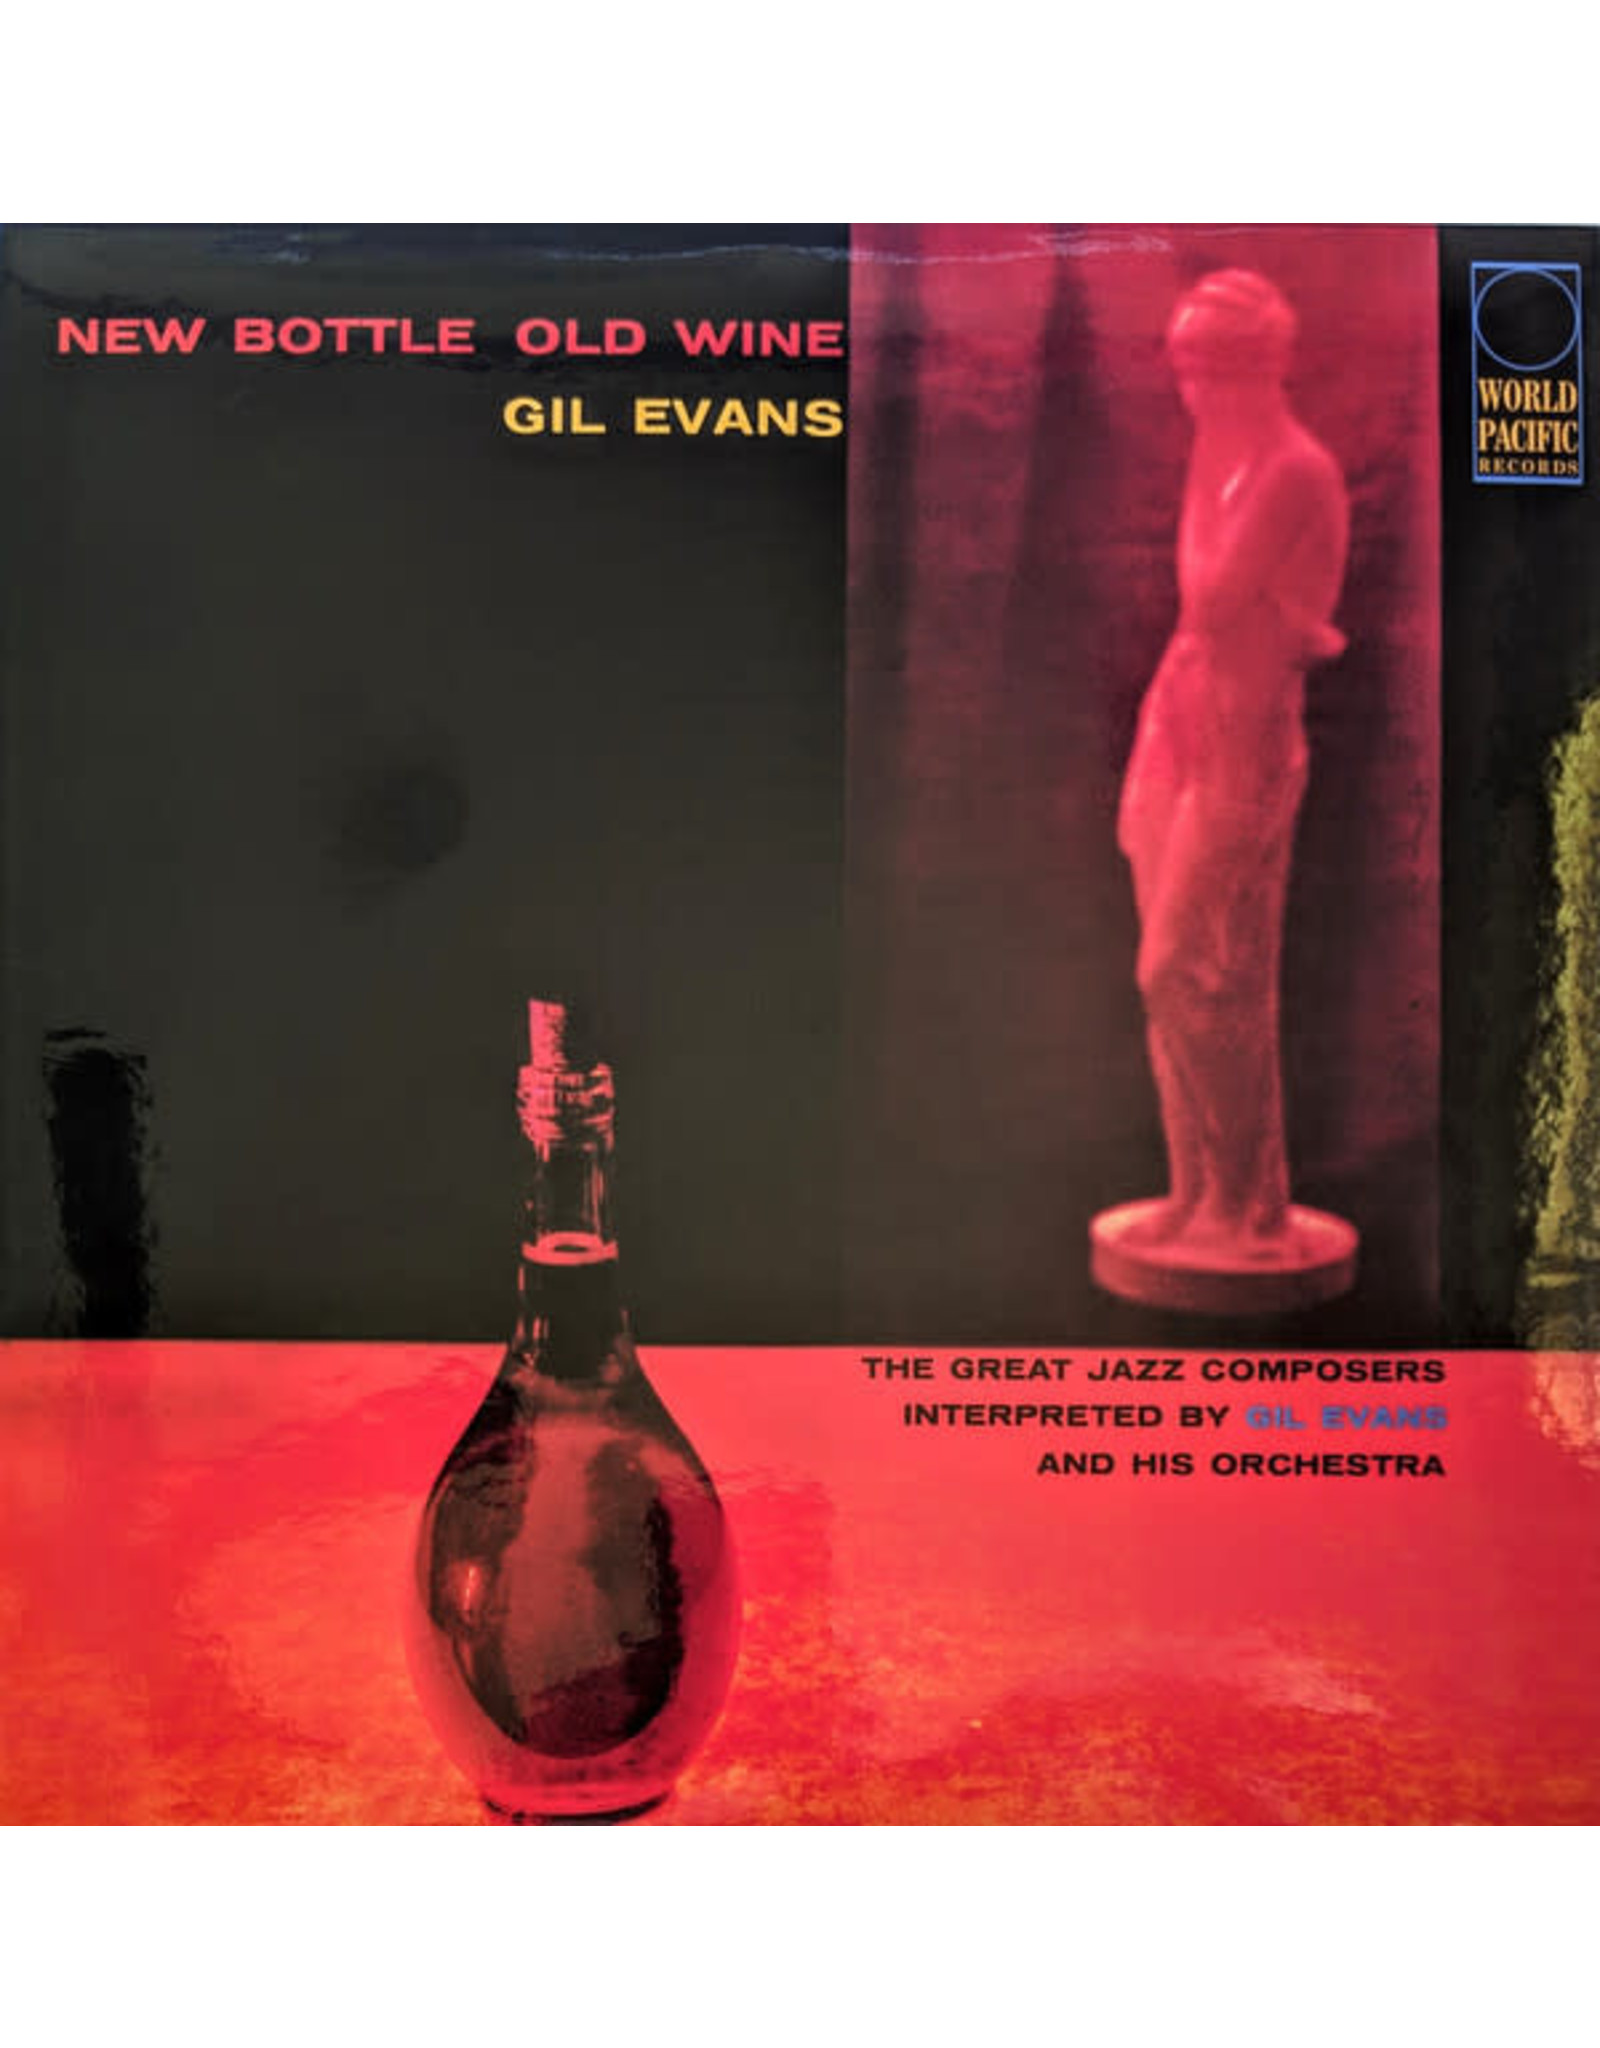 Evans, Gil - New Bottle, Old Wine LP